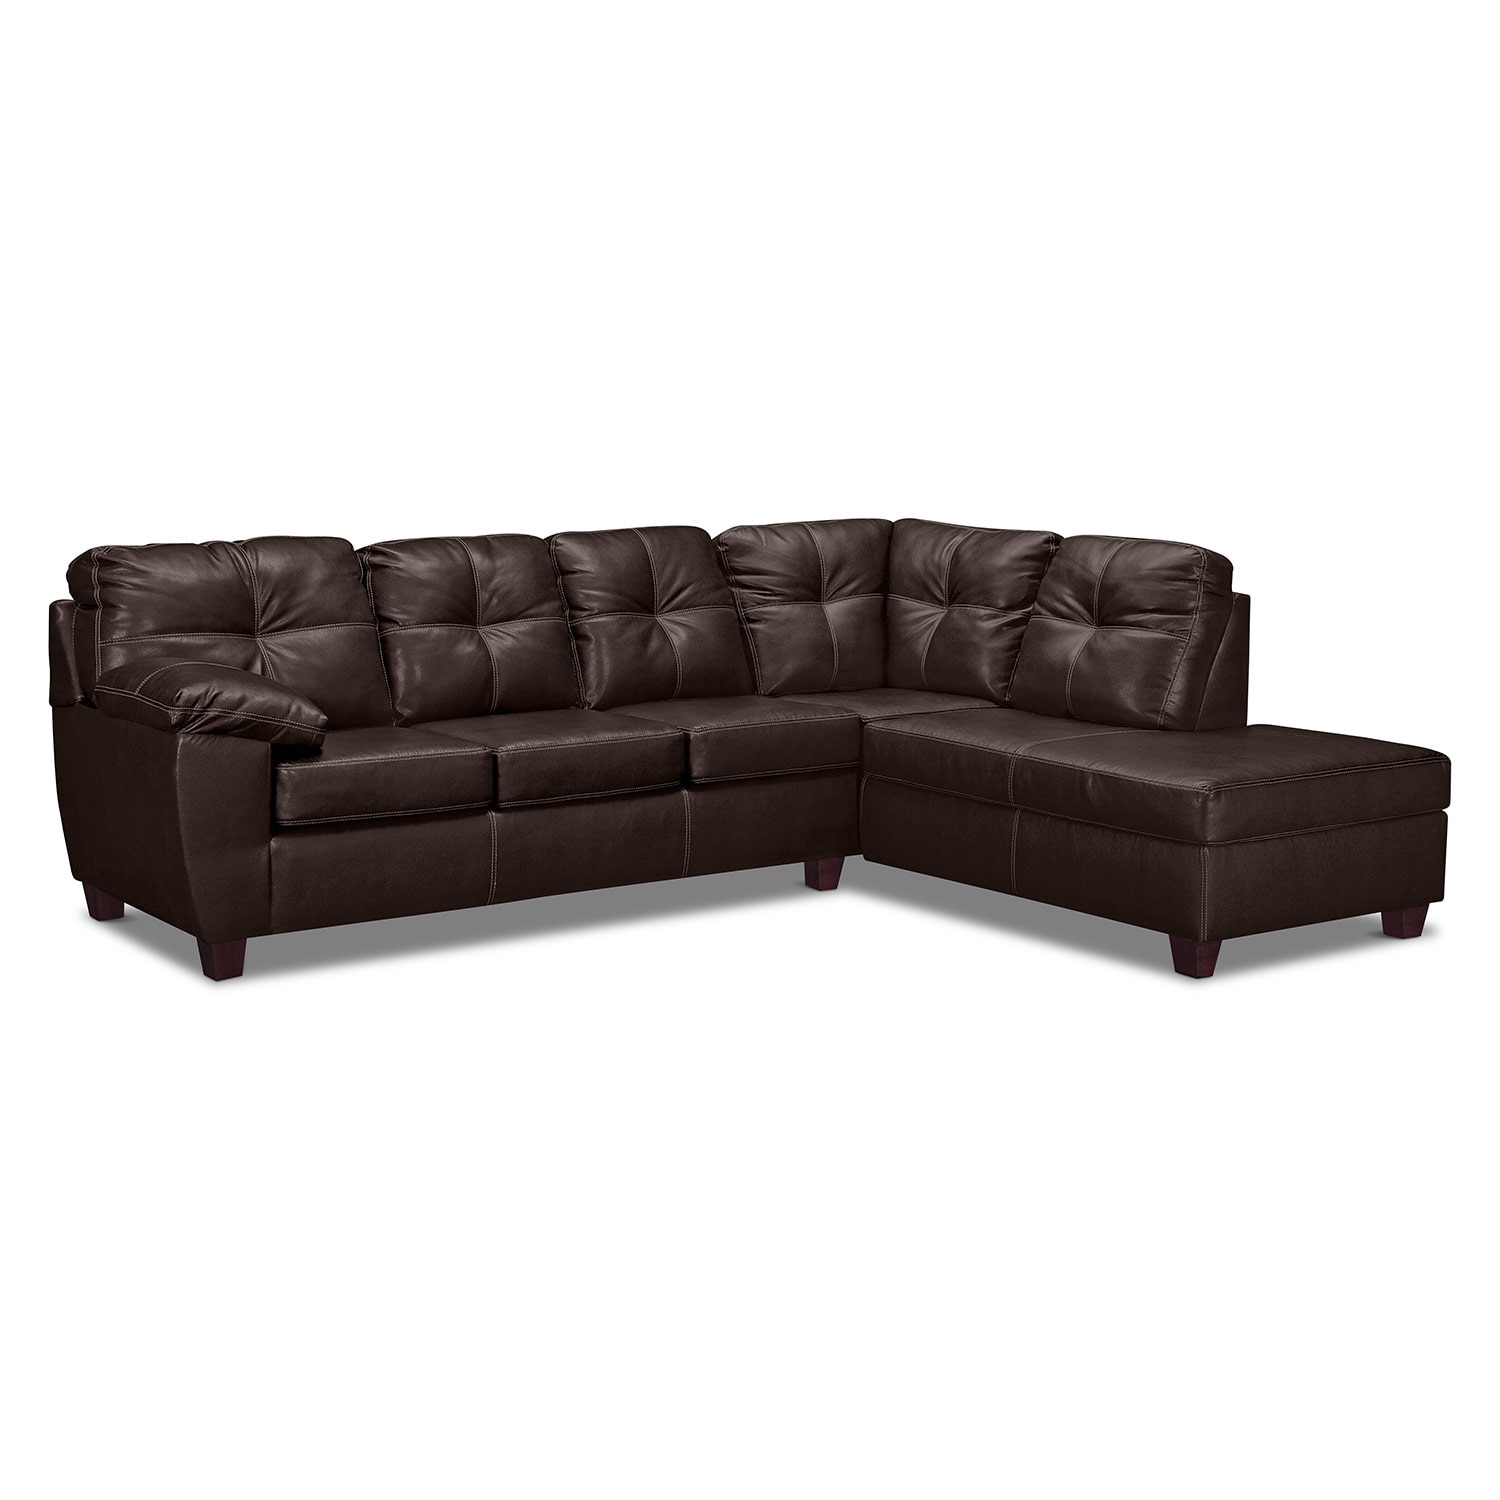 Rialto 2-Piece Sectional with Right-Facing Chaise - Brown